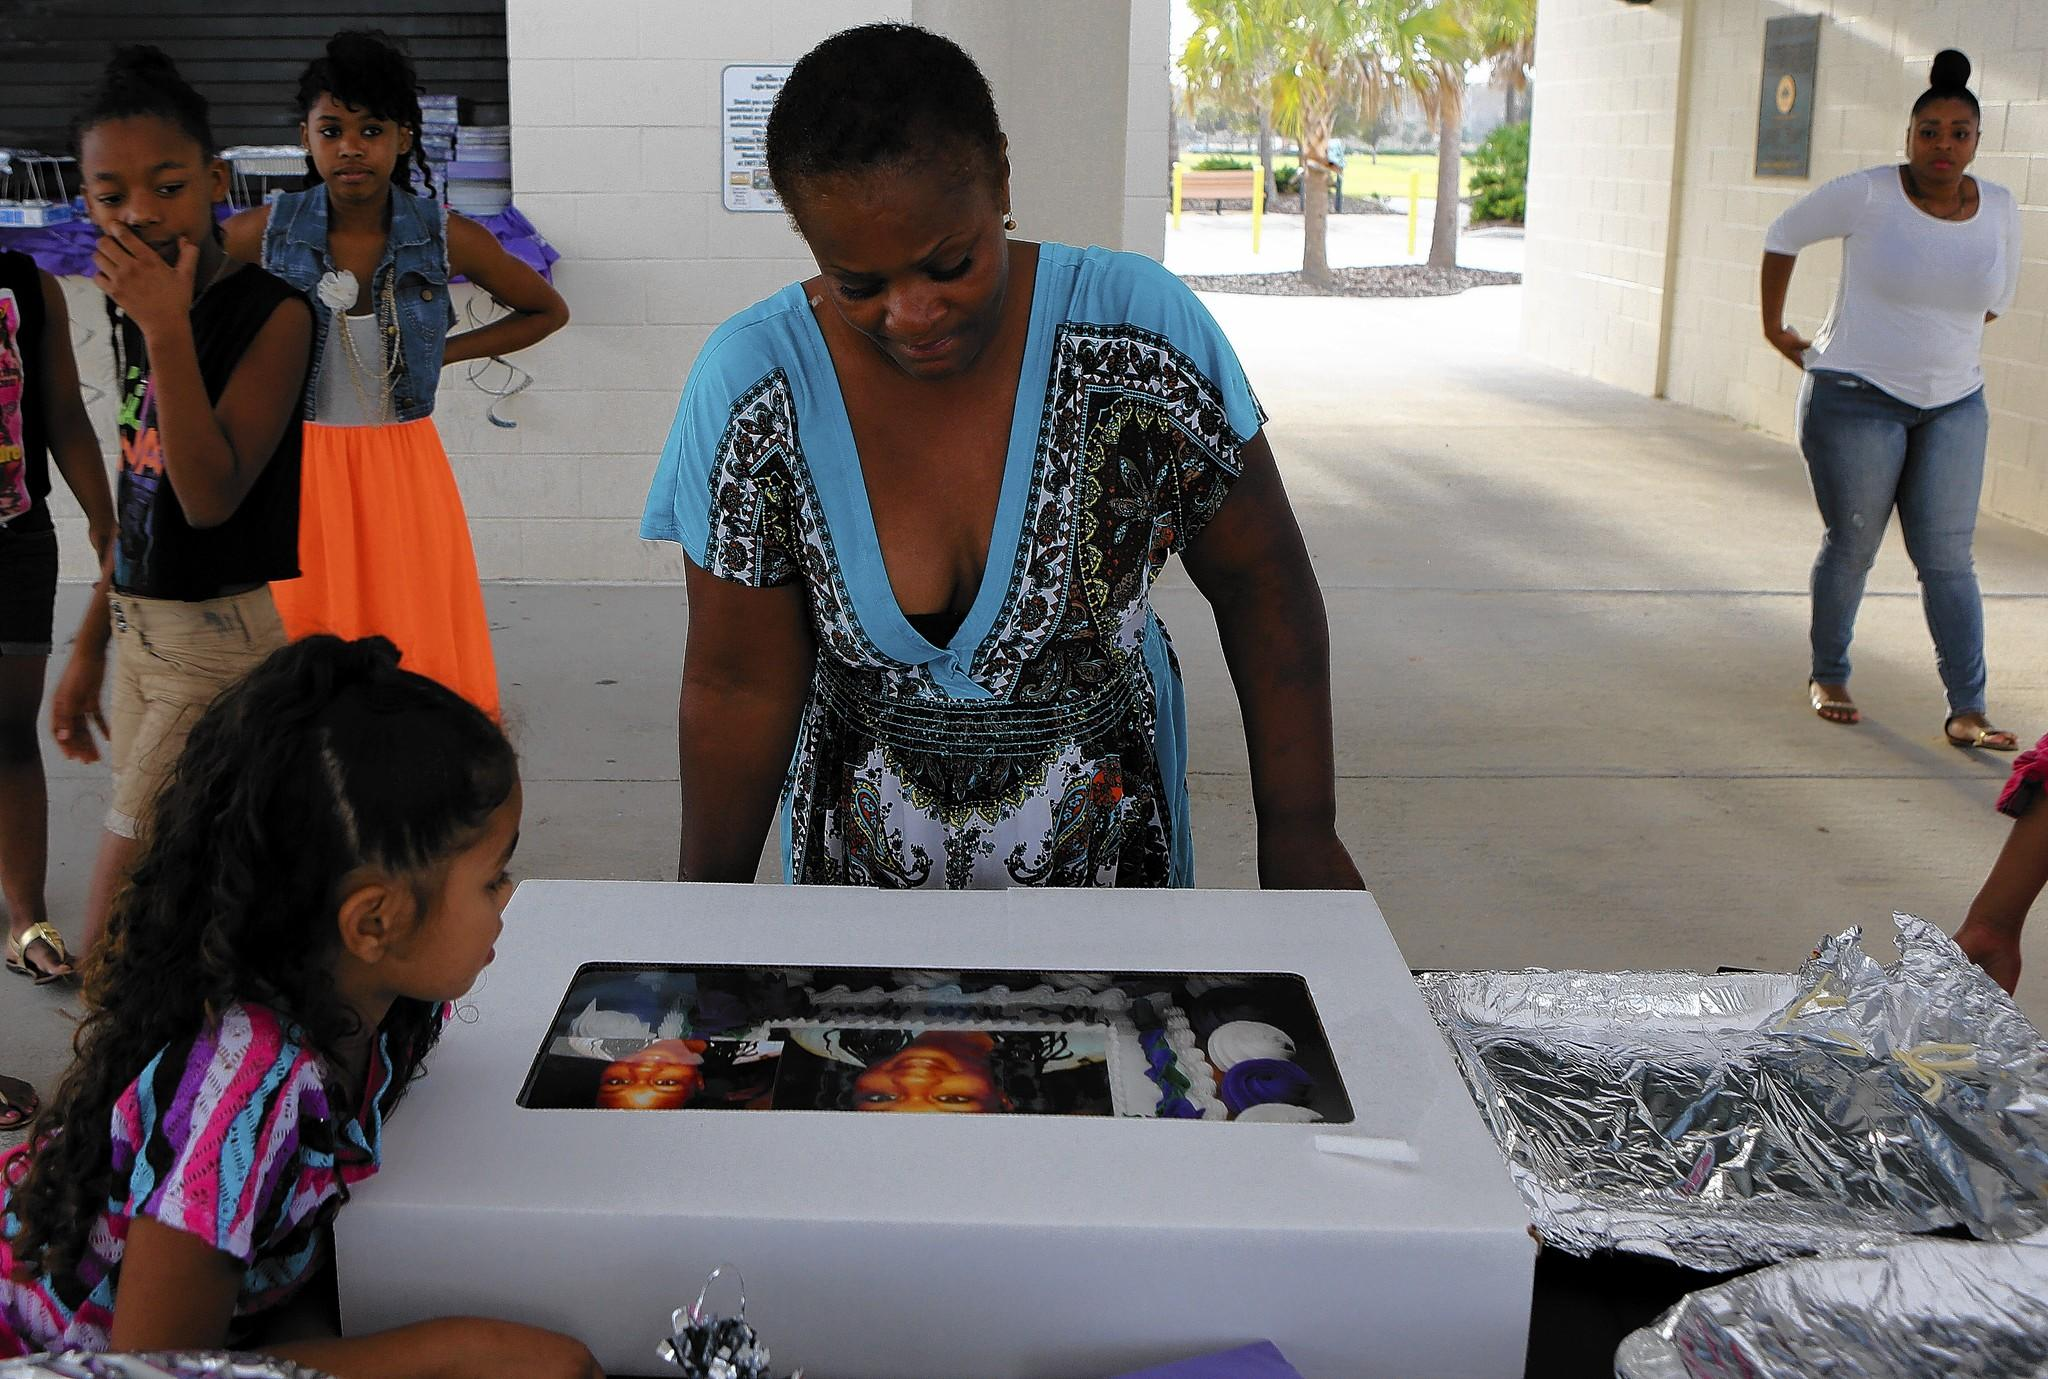 Andrea Wingster looks at a cake bearing a photo of her late daughter, Desire Andre, during a family gathering to commemorate Andre, who was hit by a car on Lee Road last year, leaving her 10 children without the central figure in their lives.